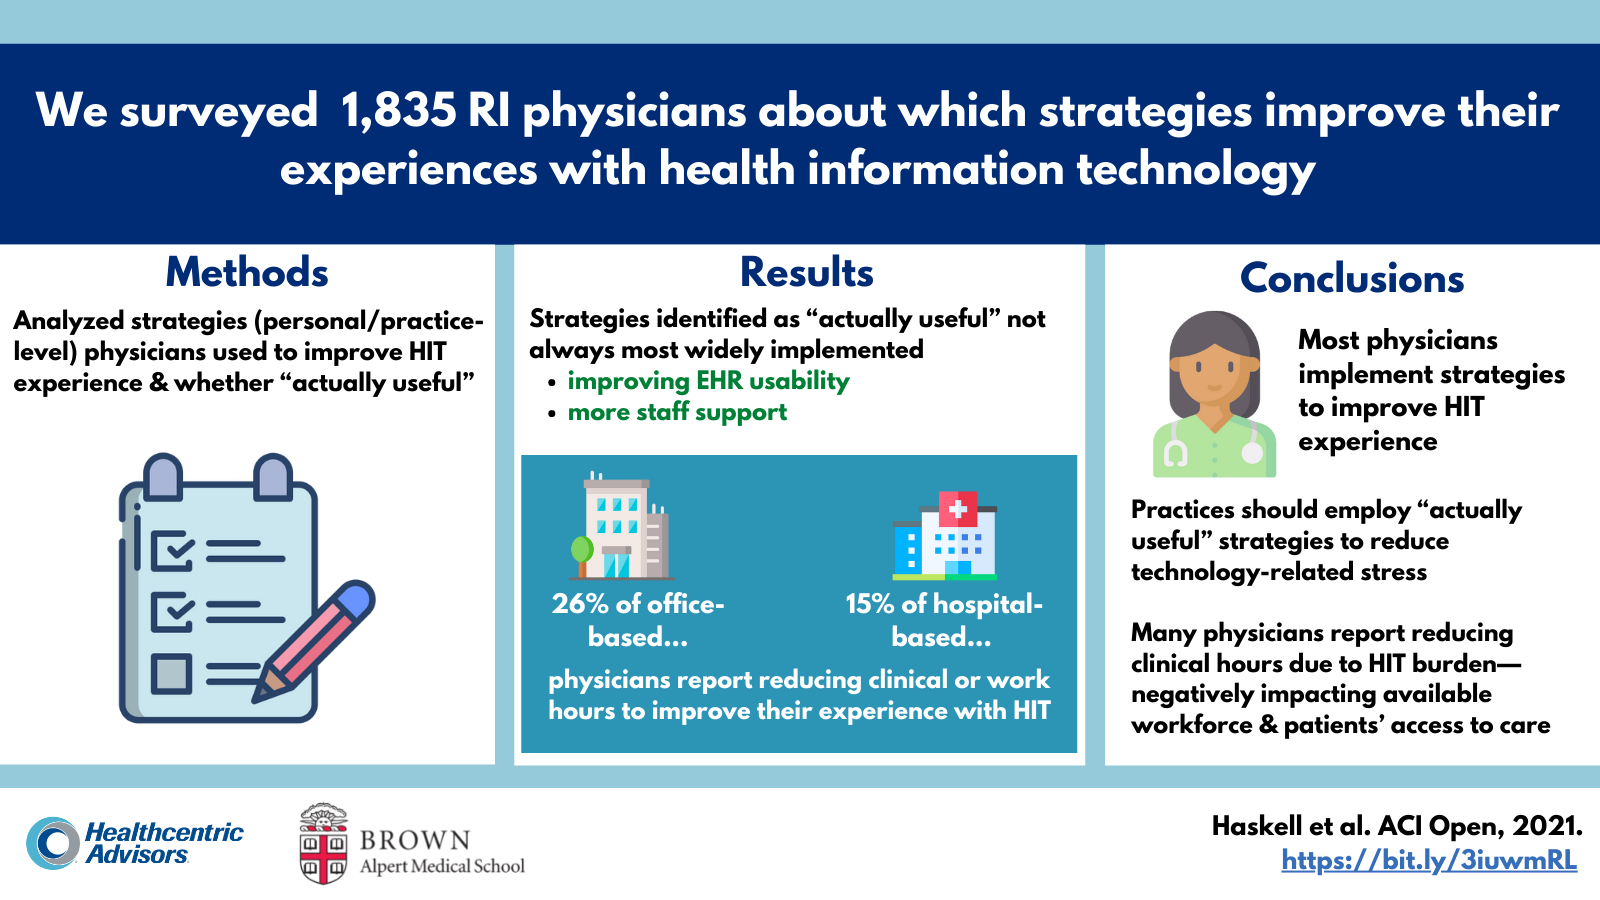 We surveyed 1,835 physicians about which strategies improve experiences with HIT